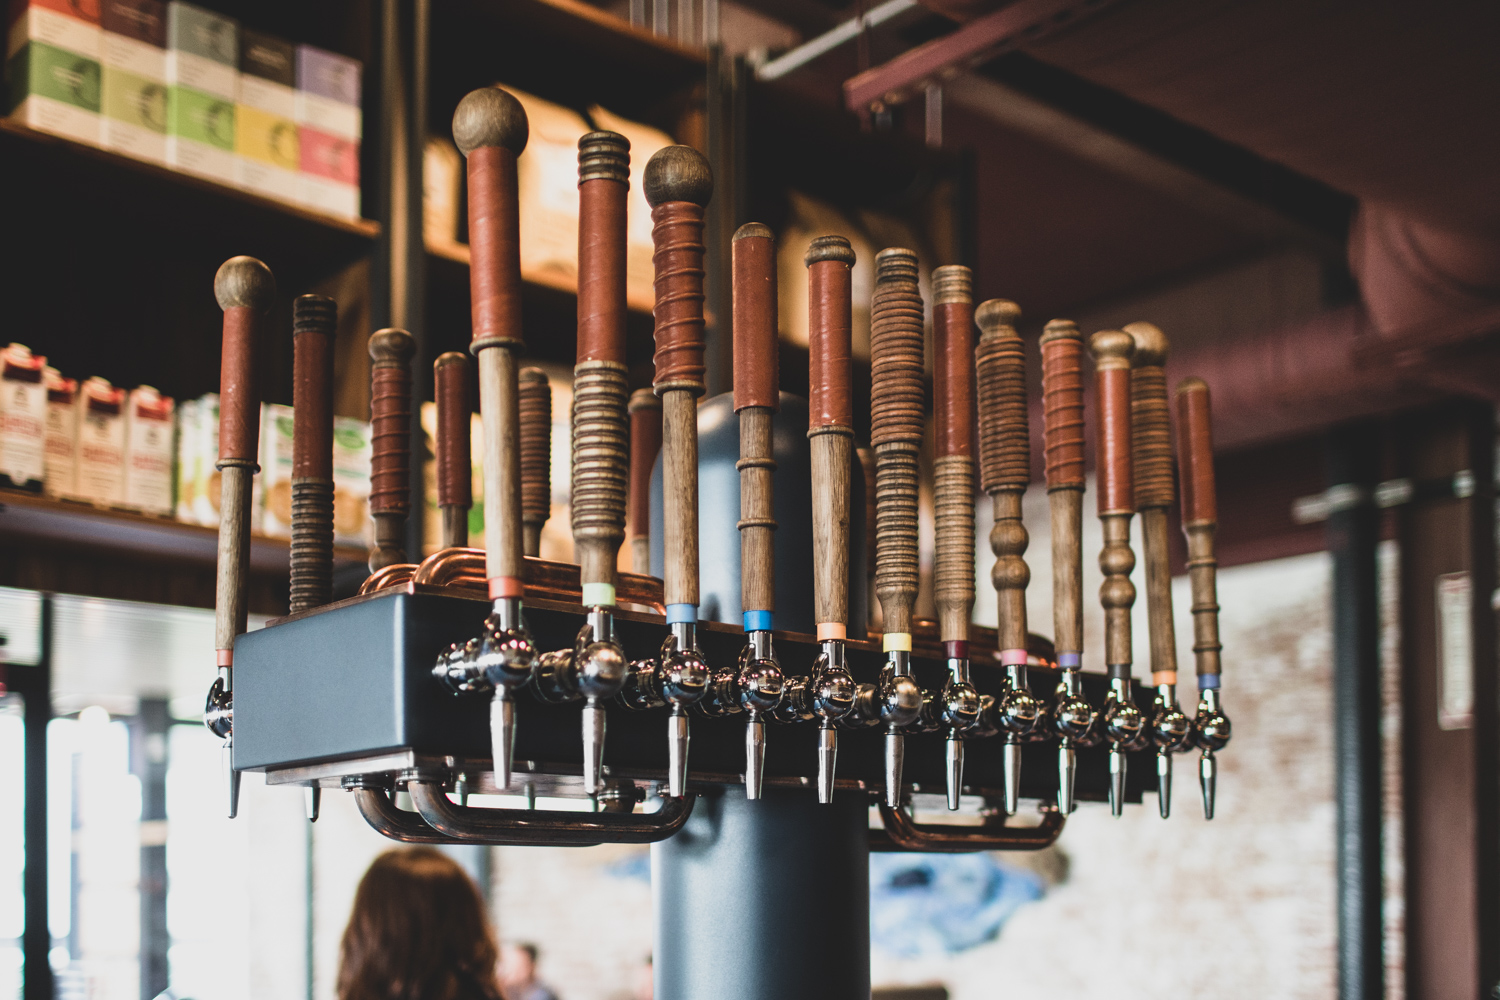 What's on tap? There are fourteen options at Cold Brew Bar (see above).